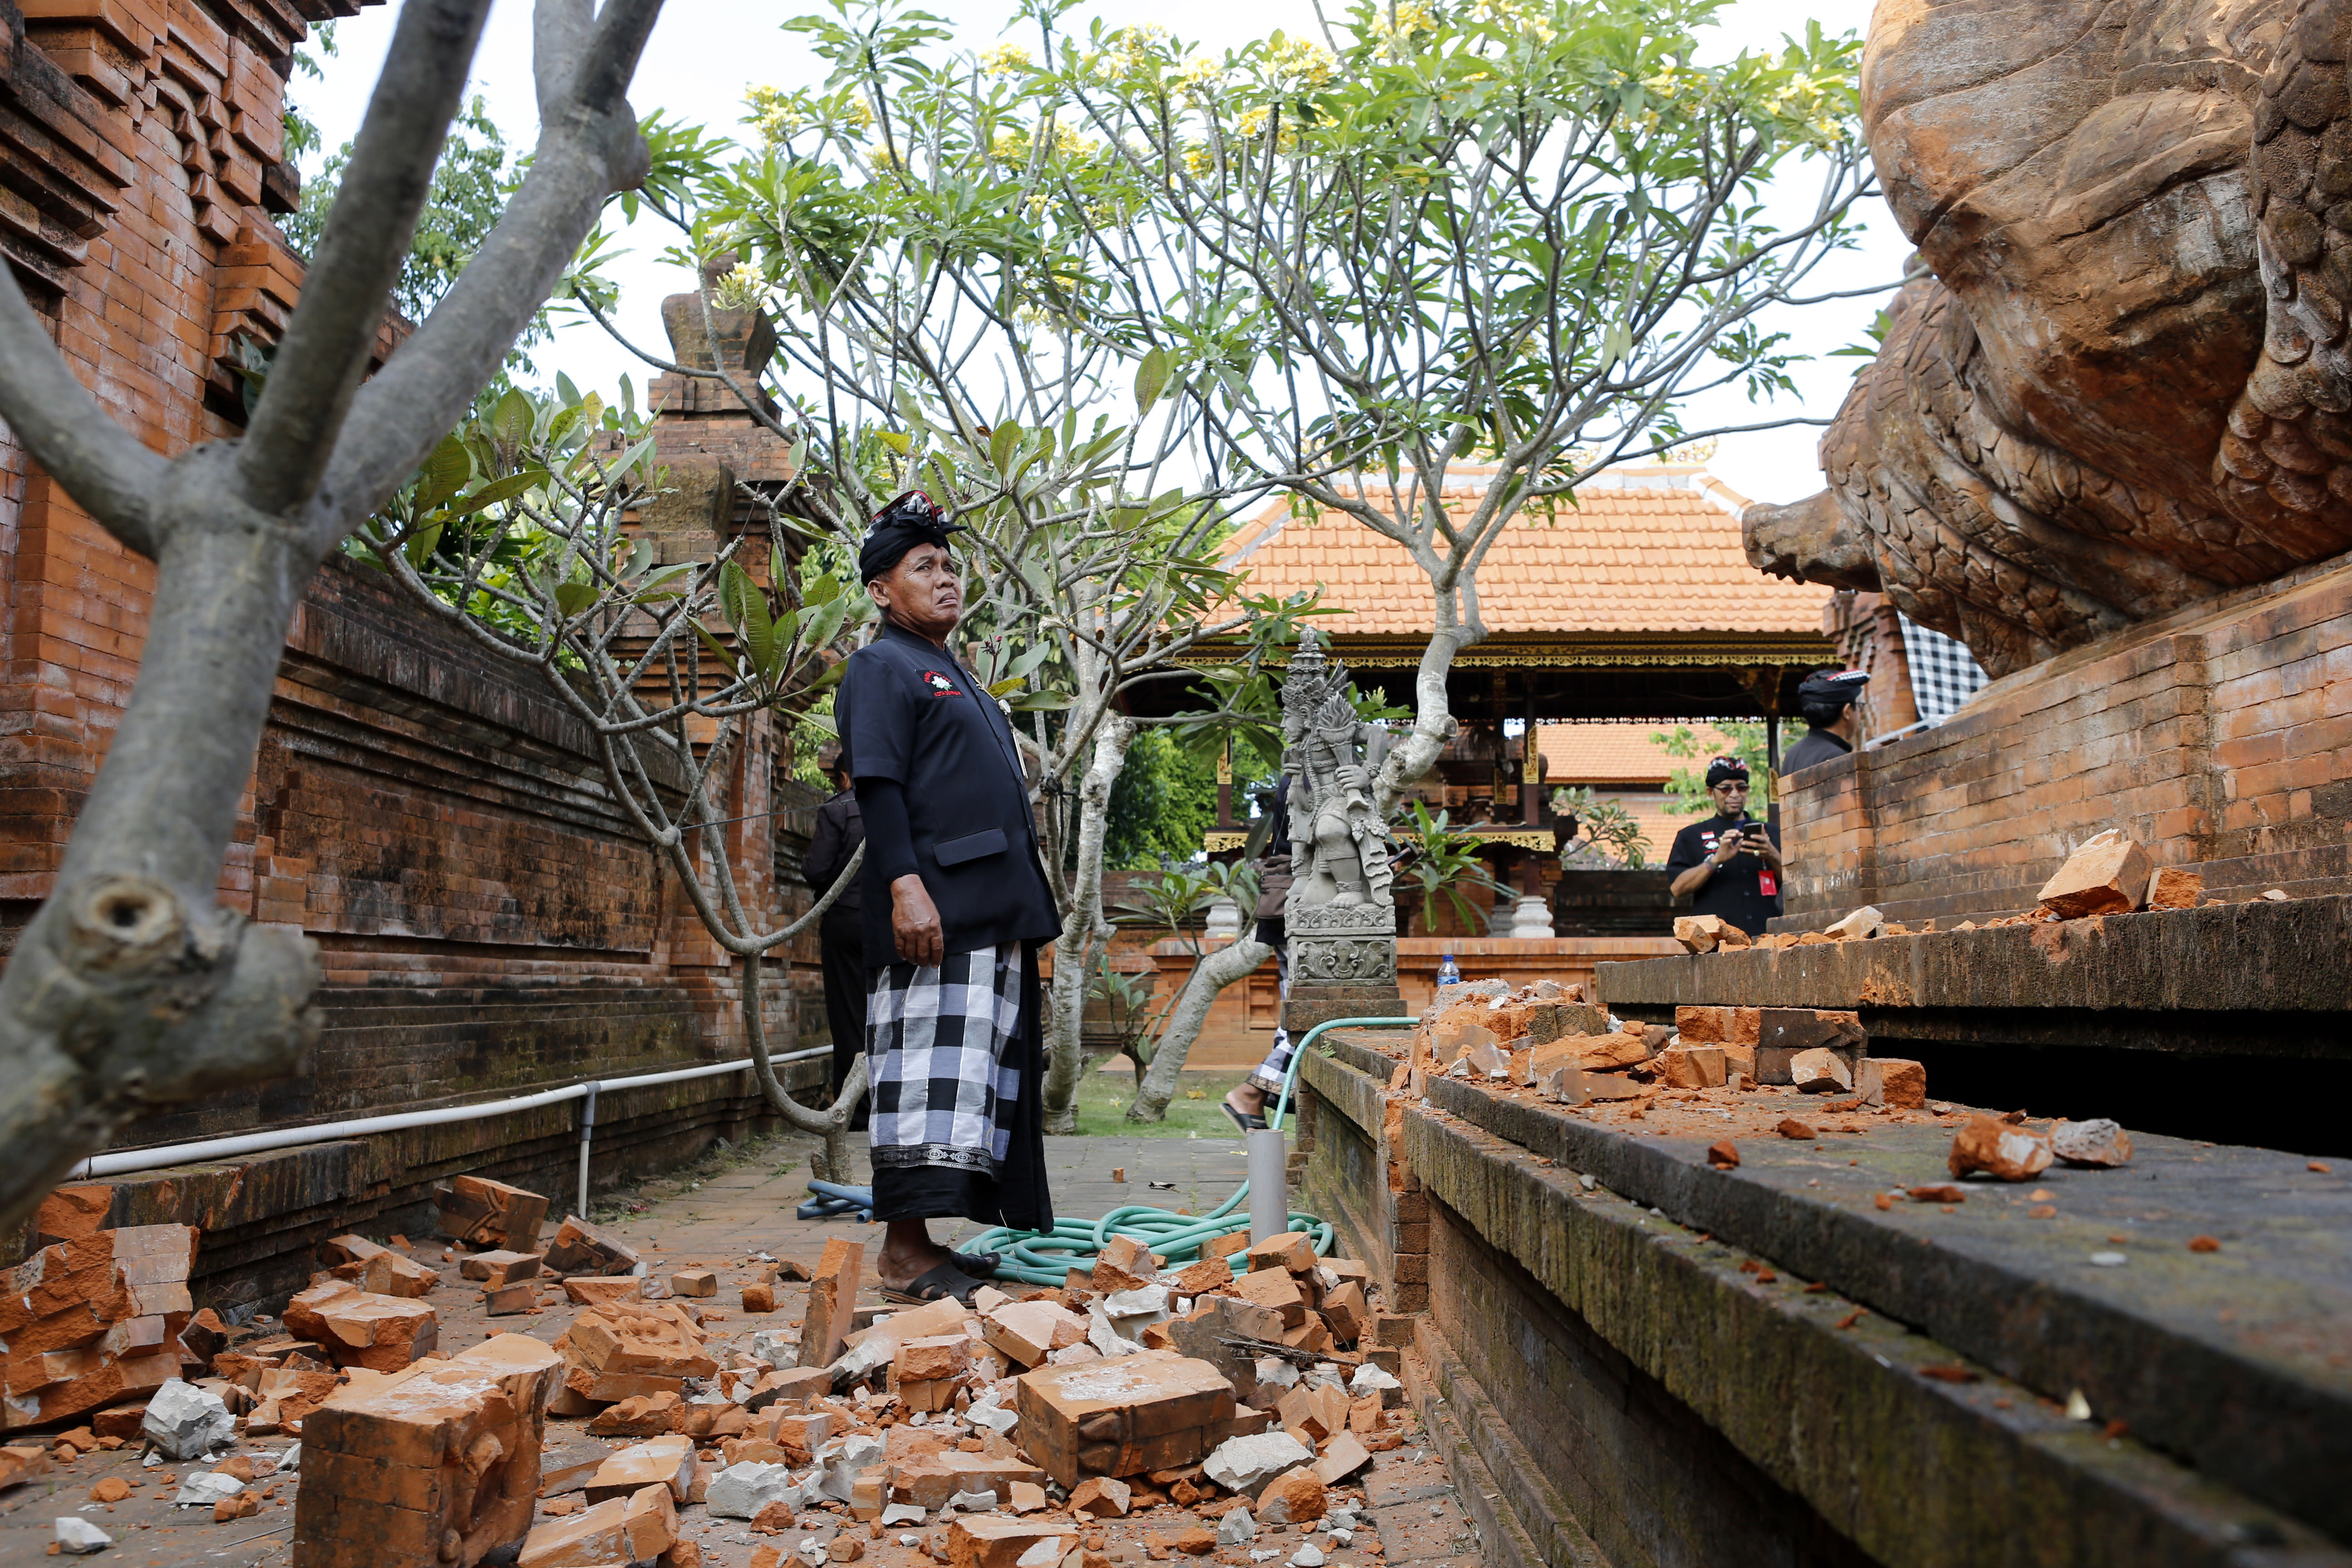 Balinese man stands near a damaged temple in Bali, Indonesia Tuesday, July 16, 2019. Indonesian authorities say a subsea earthquake shook Bali, Lombok and East Java on Tuesday, causing damage to homes and temples. (AP Photo/Firdia Lisnawati)